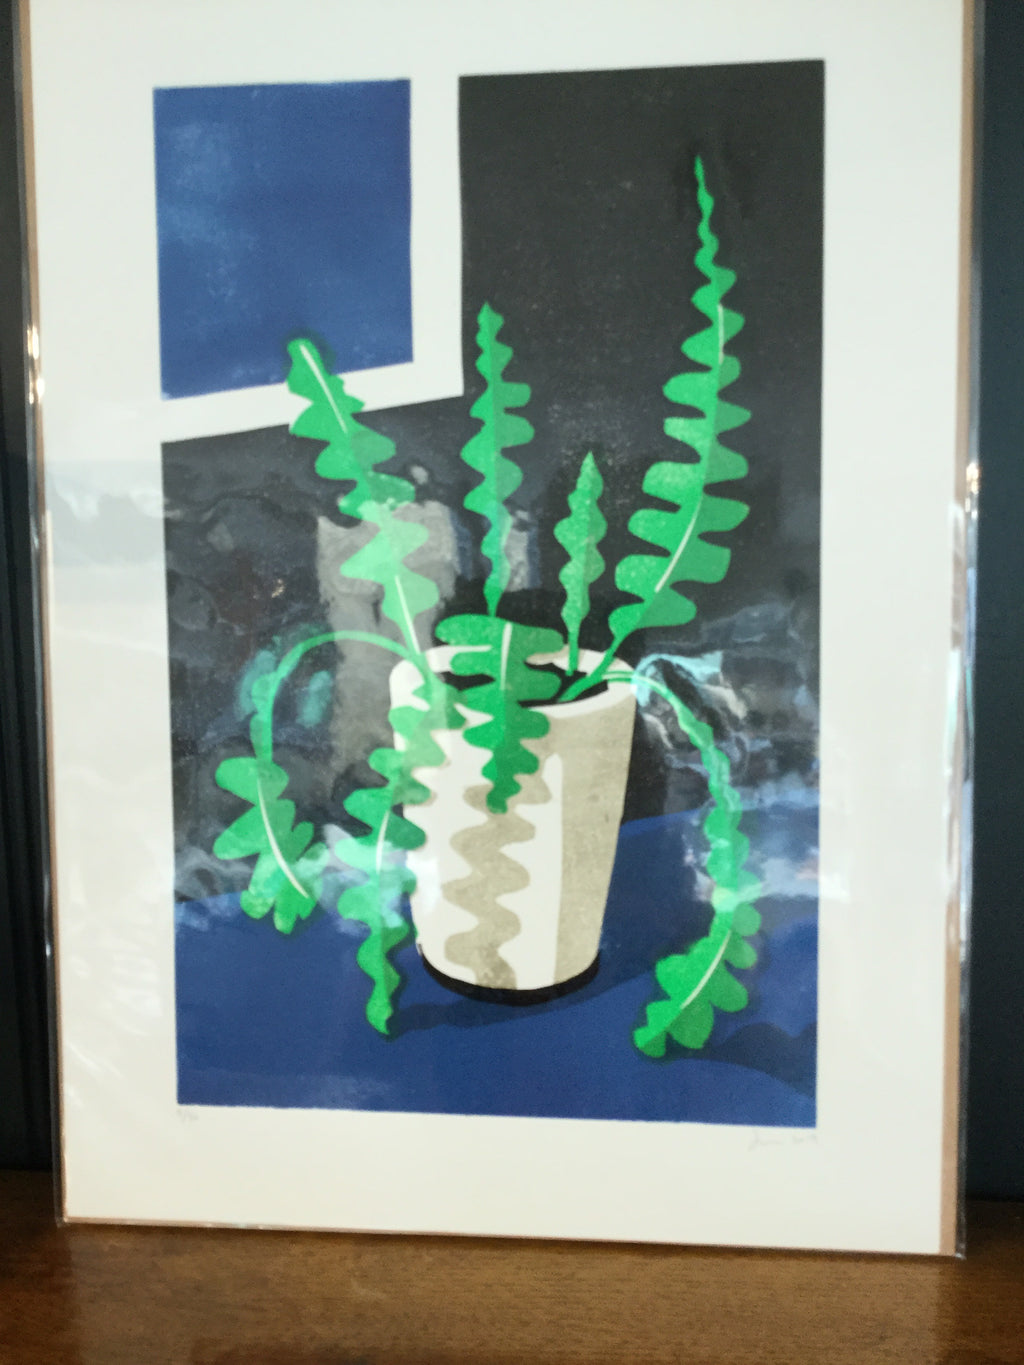 James Brown Fishbone Cactus print